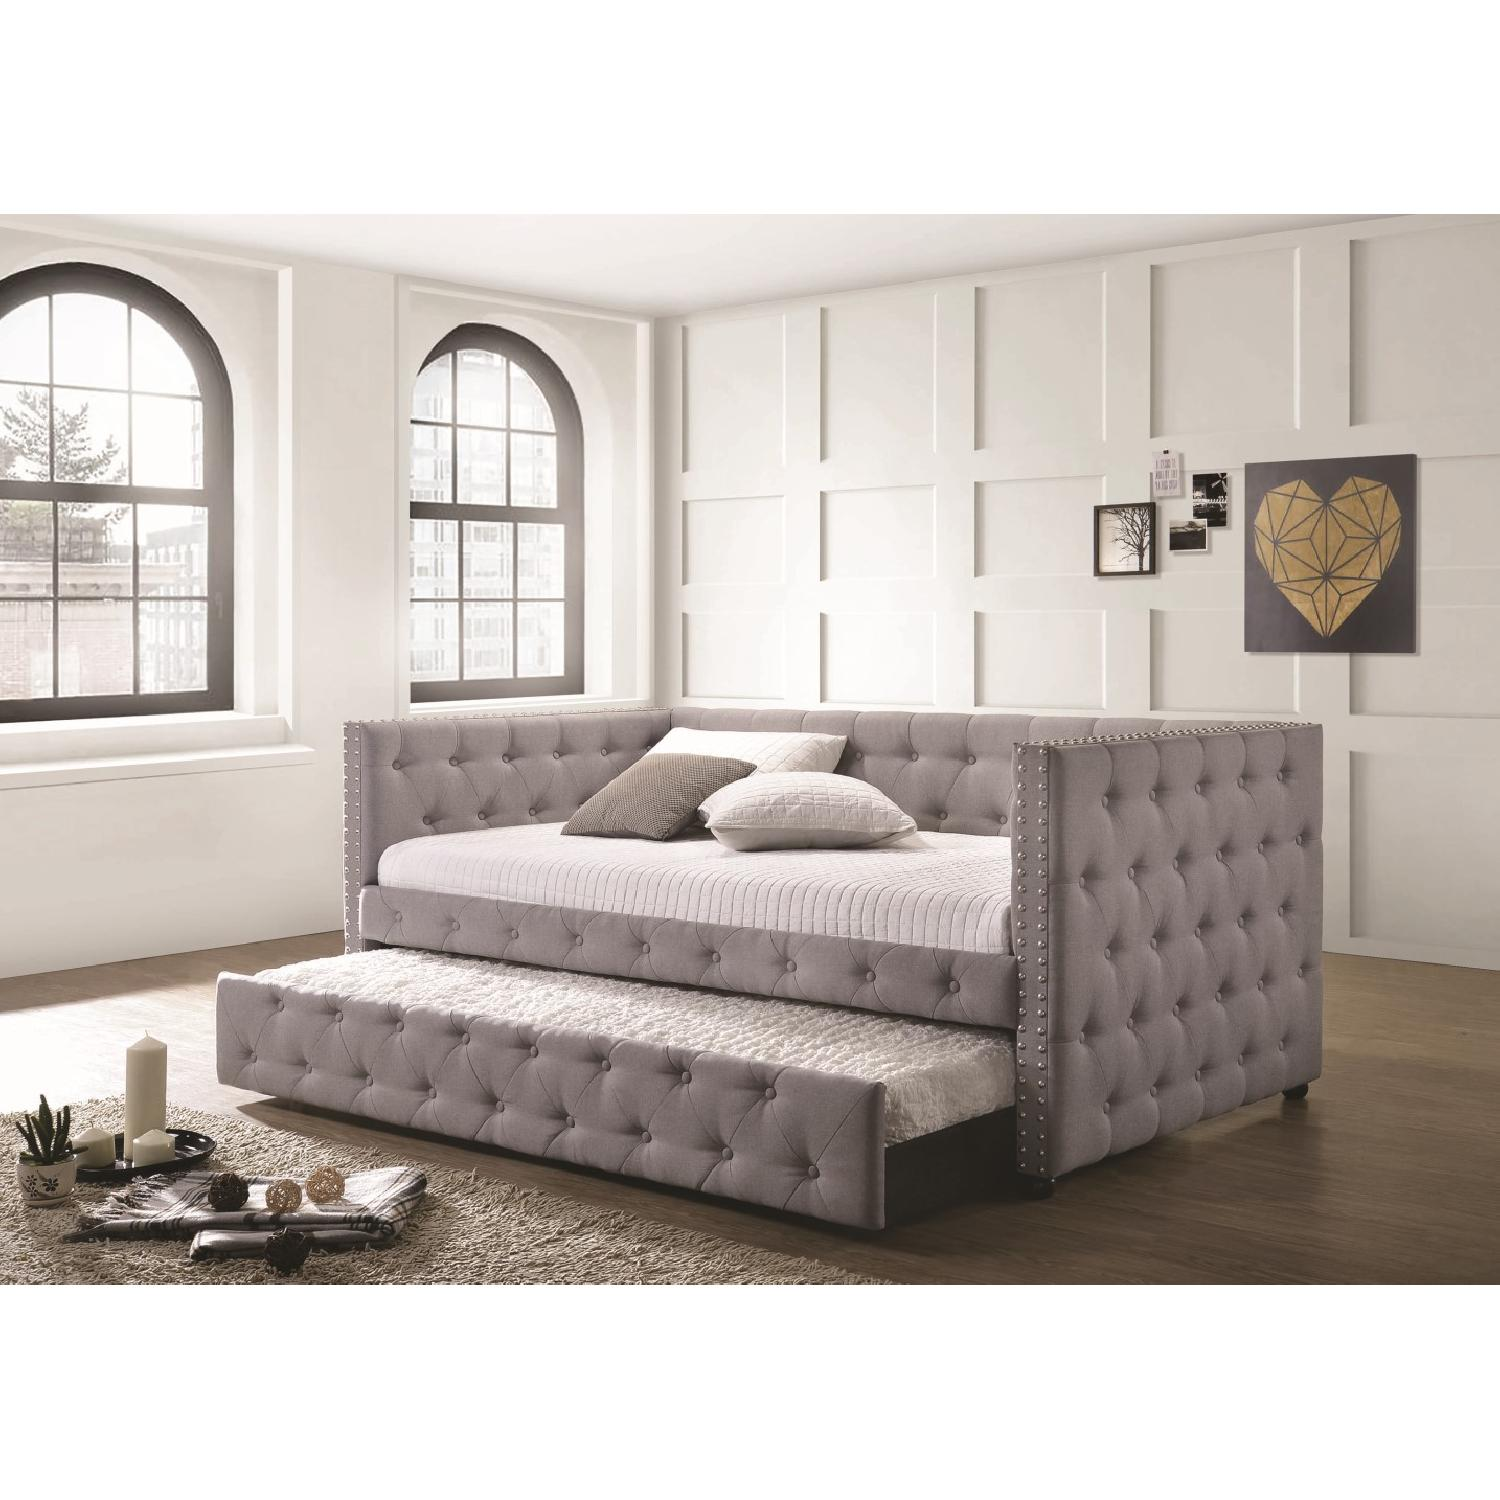 Modern Daybed w/ Trundle Upholstered in Light Grey Fabric - image-2